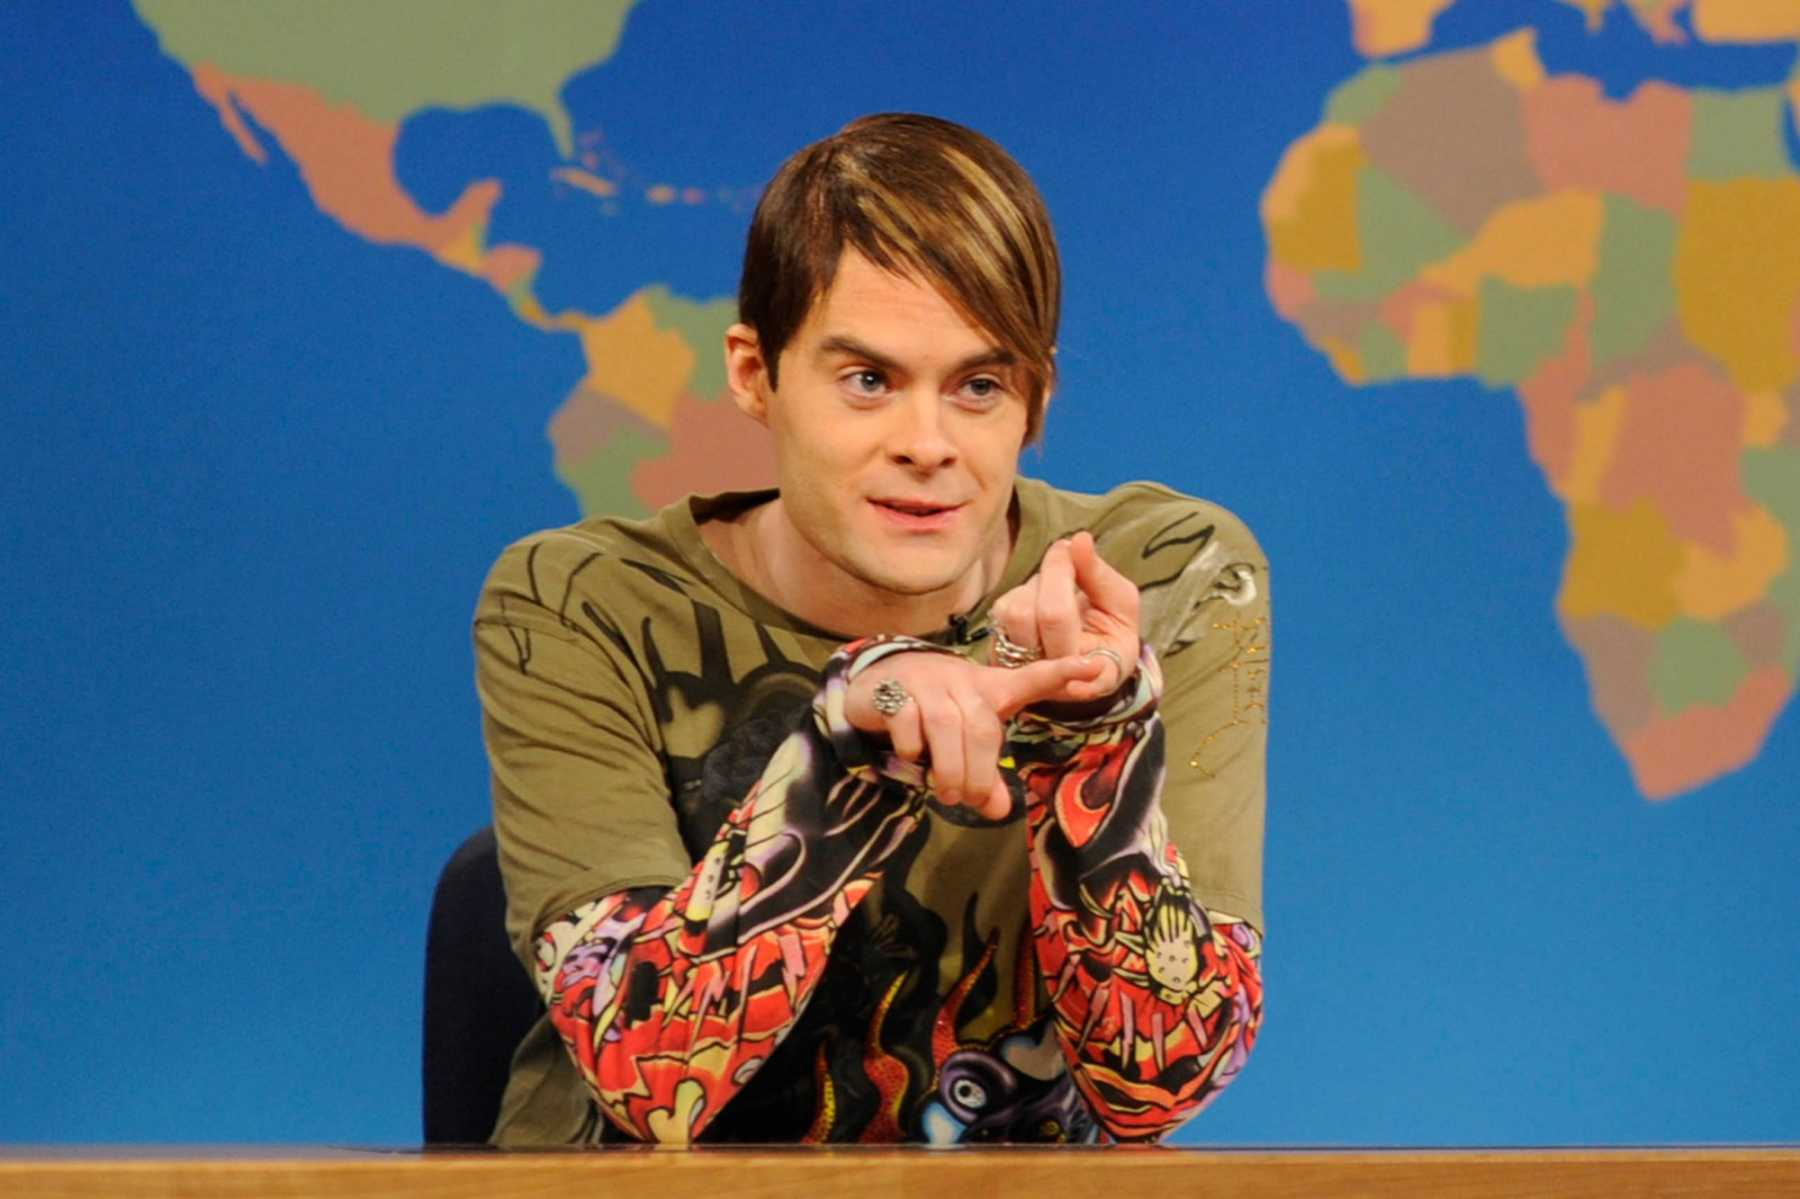 Bill Hader's Stefon Stops By Saturday Night Live's 'Weekend Update' | Bill Hader